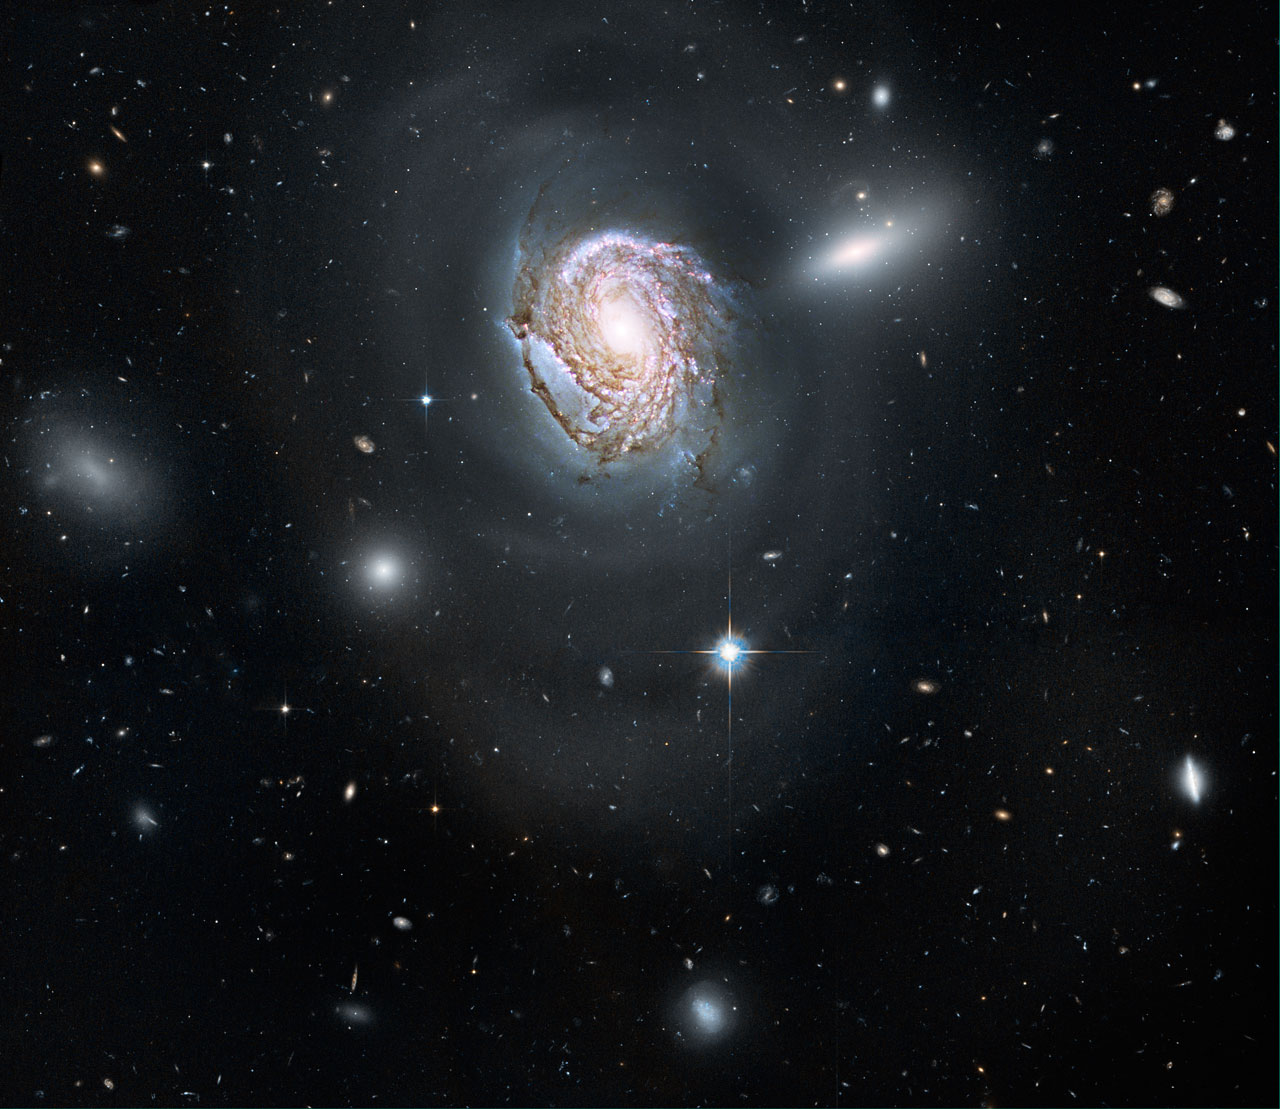 space galaxy formation - photo #5